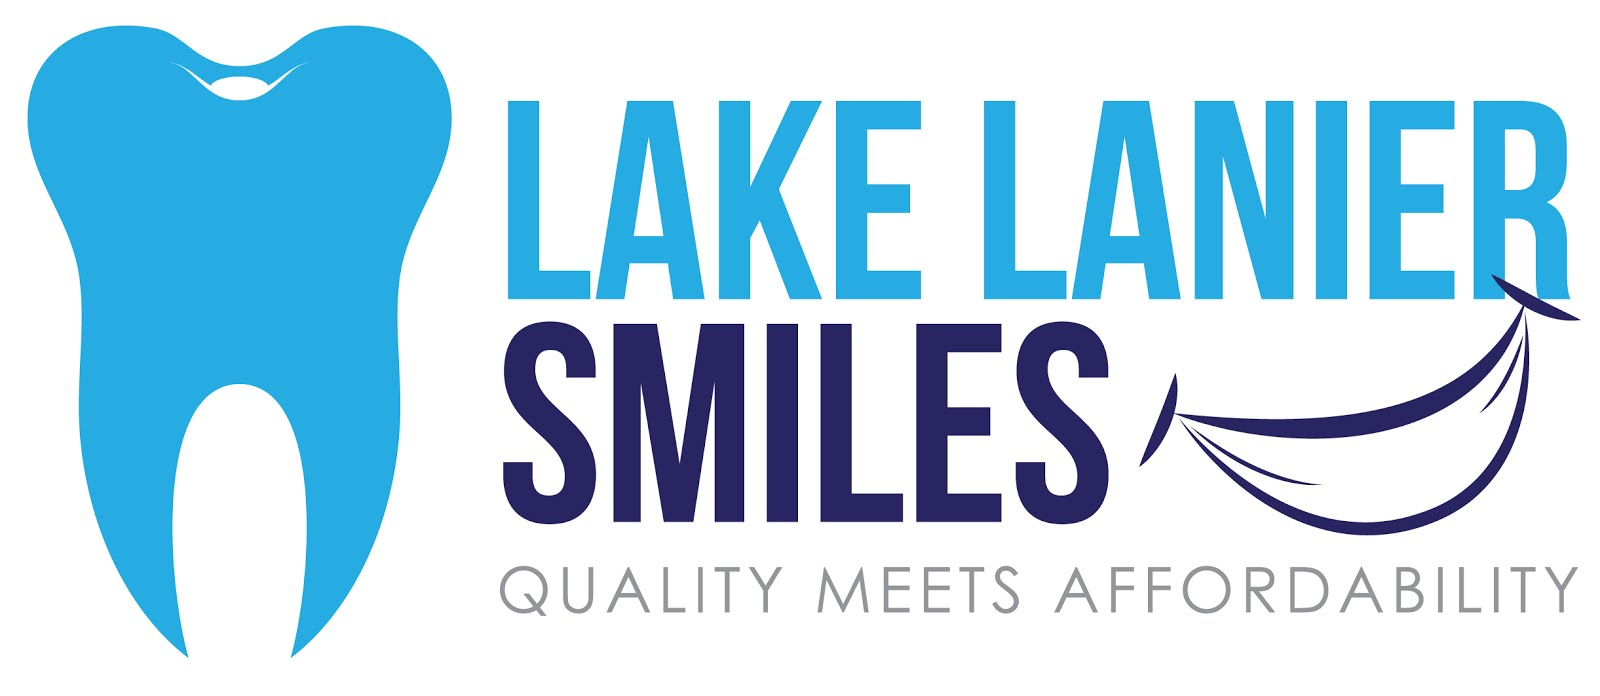 LAKE LANIER SMILES